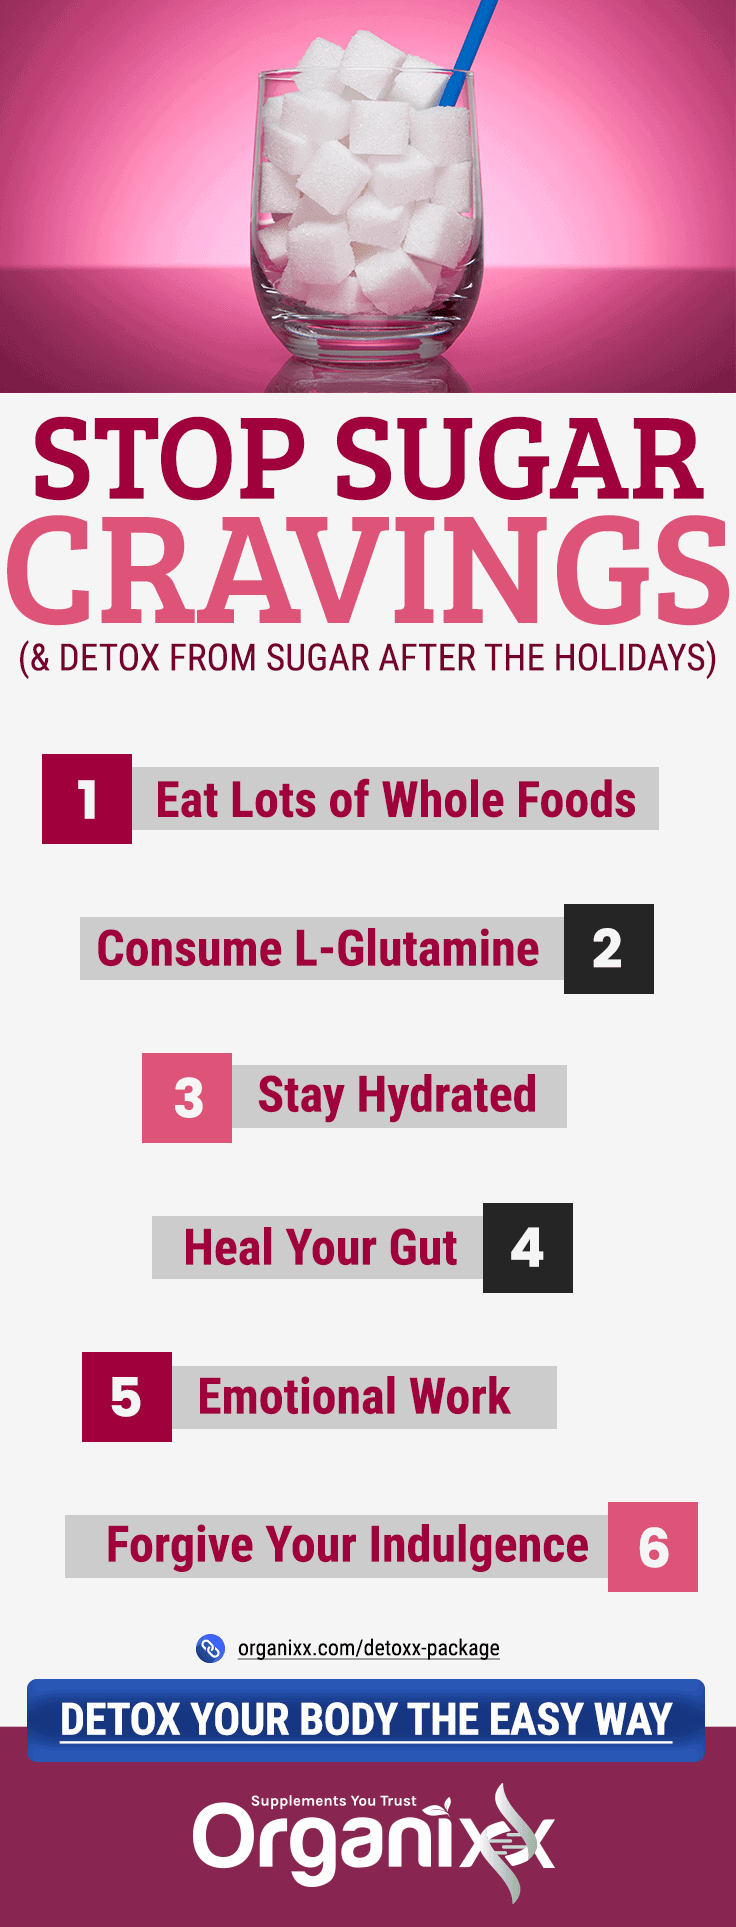 Steps to Stop Sugar Cravings